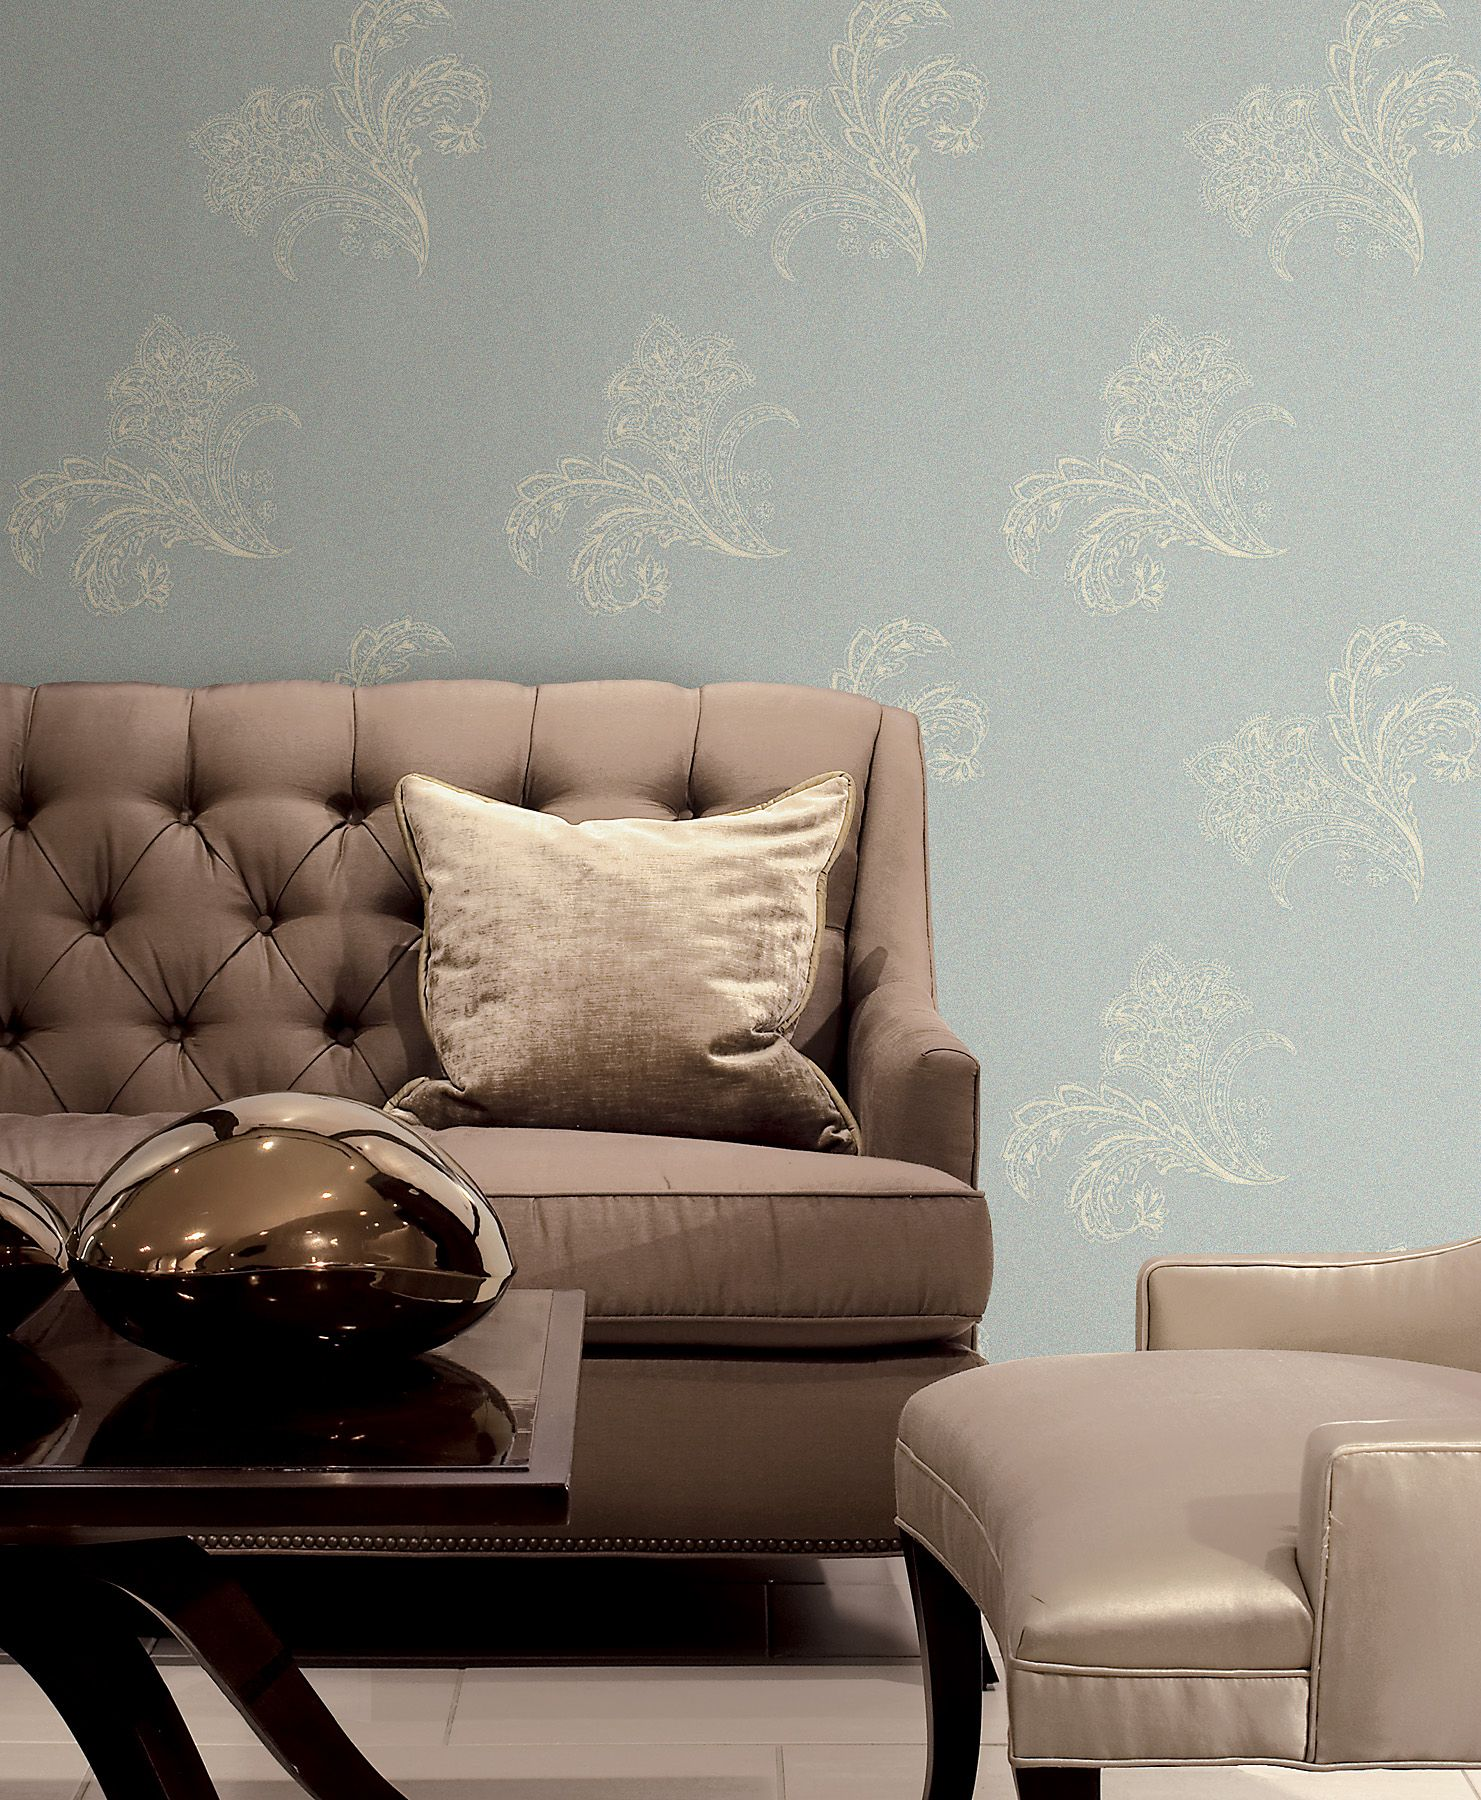 Joseph Abboud Collection by James Home wallpaper